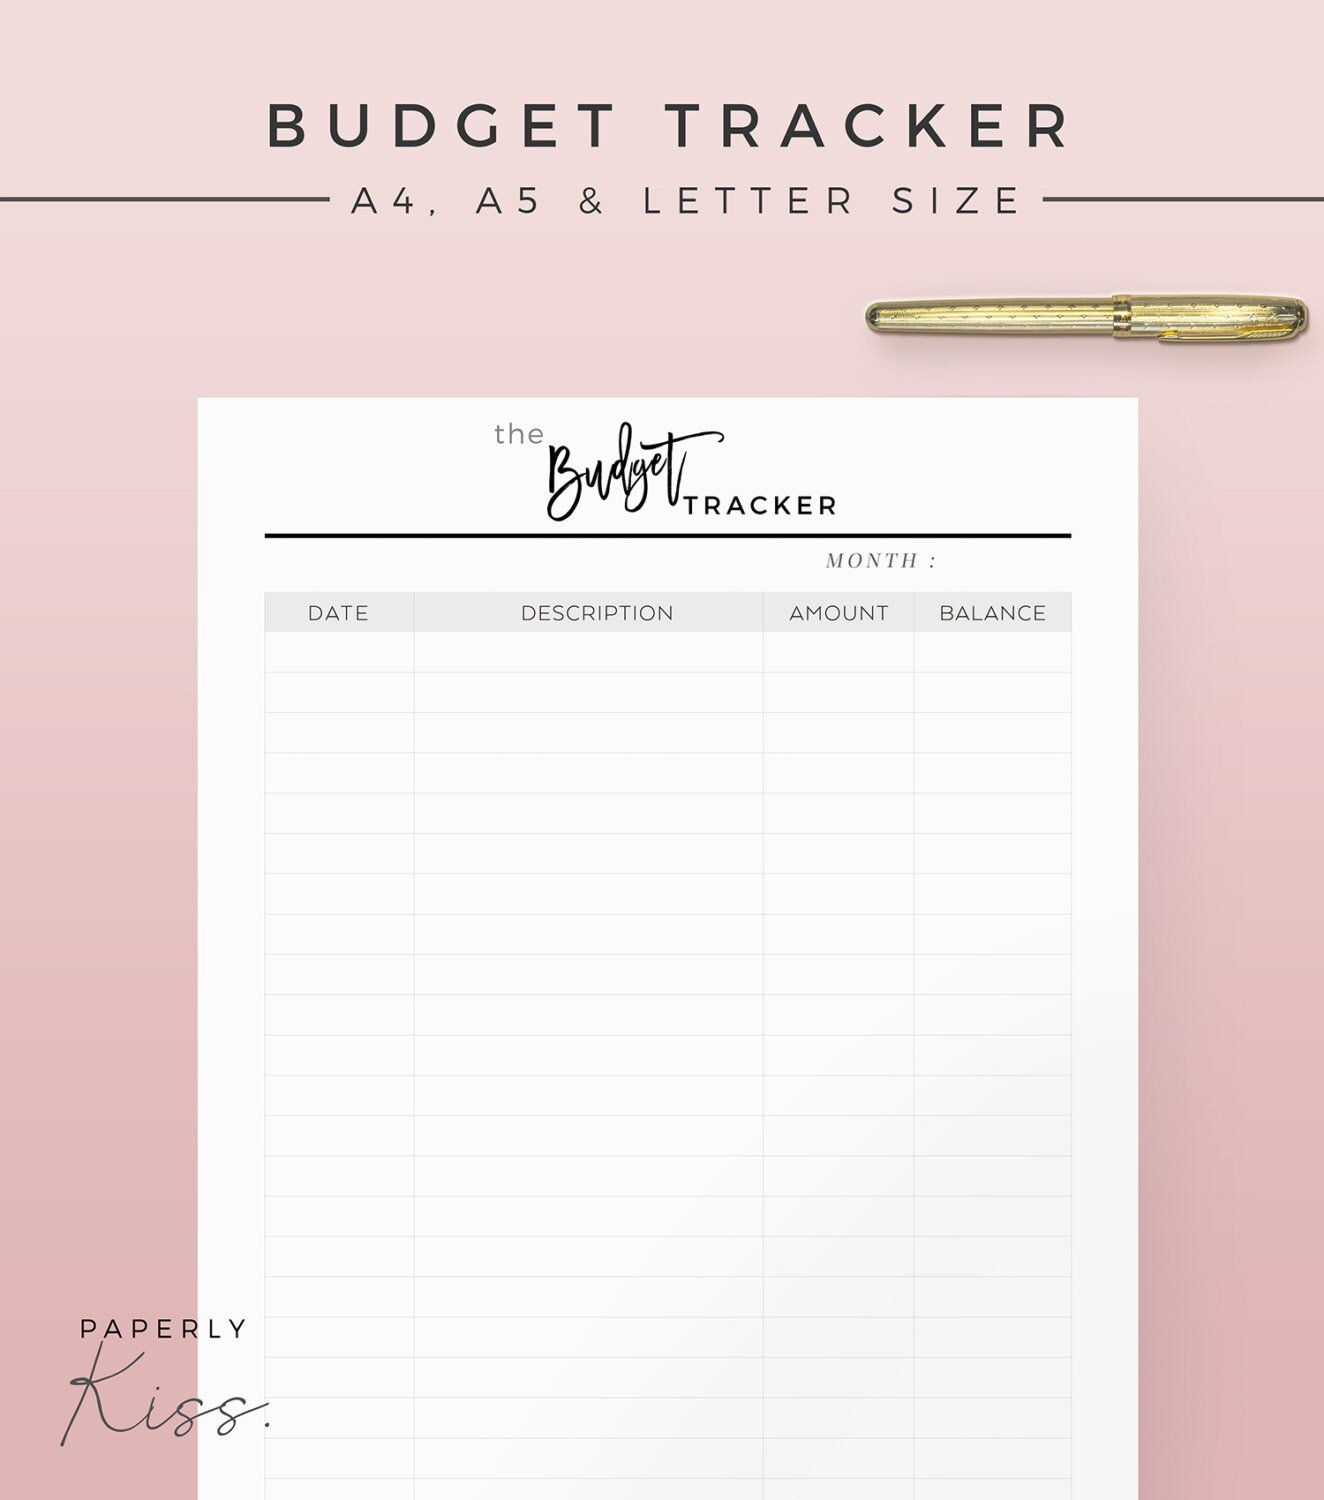 Monthly Budget Tracker Printable Planner Inserts A4 A5 inside Simple Budgeting Planner Insert